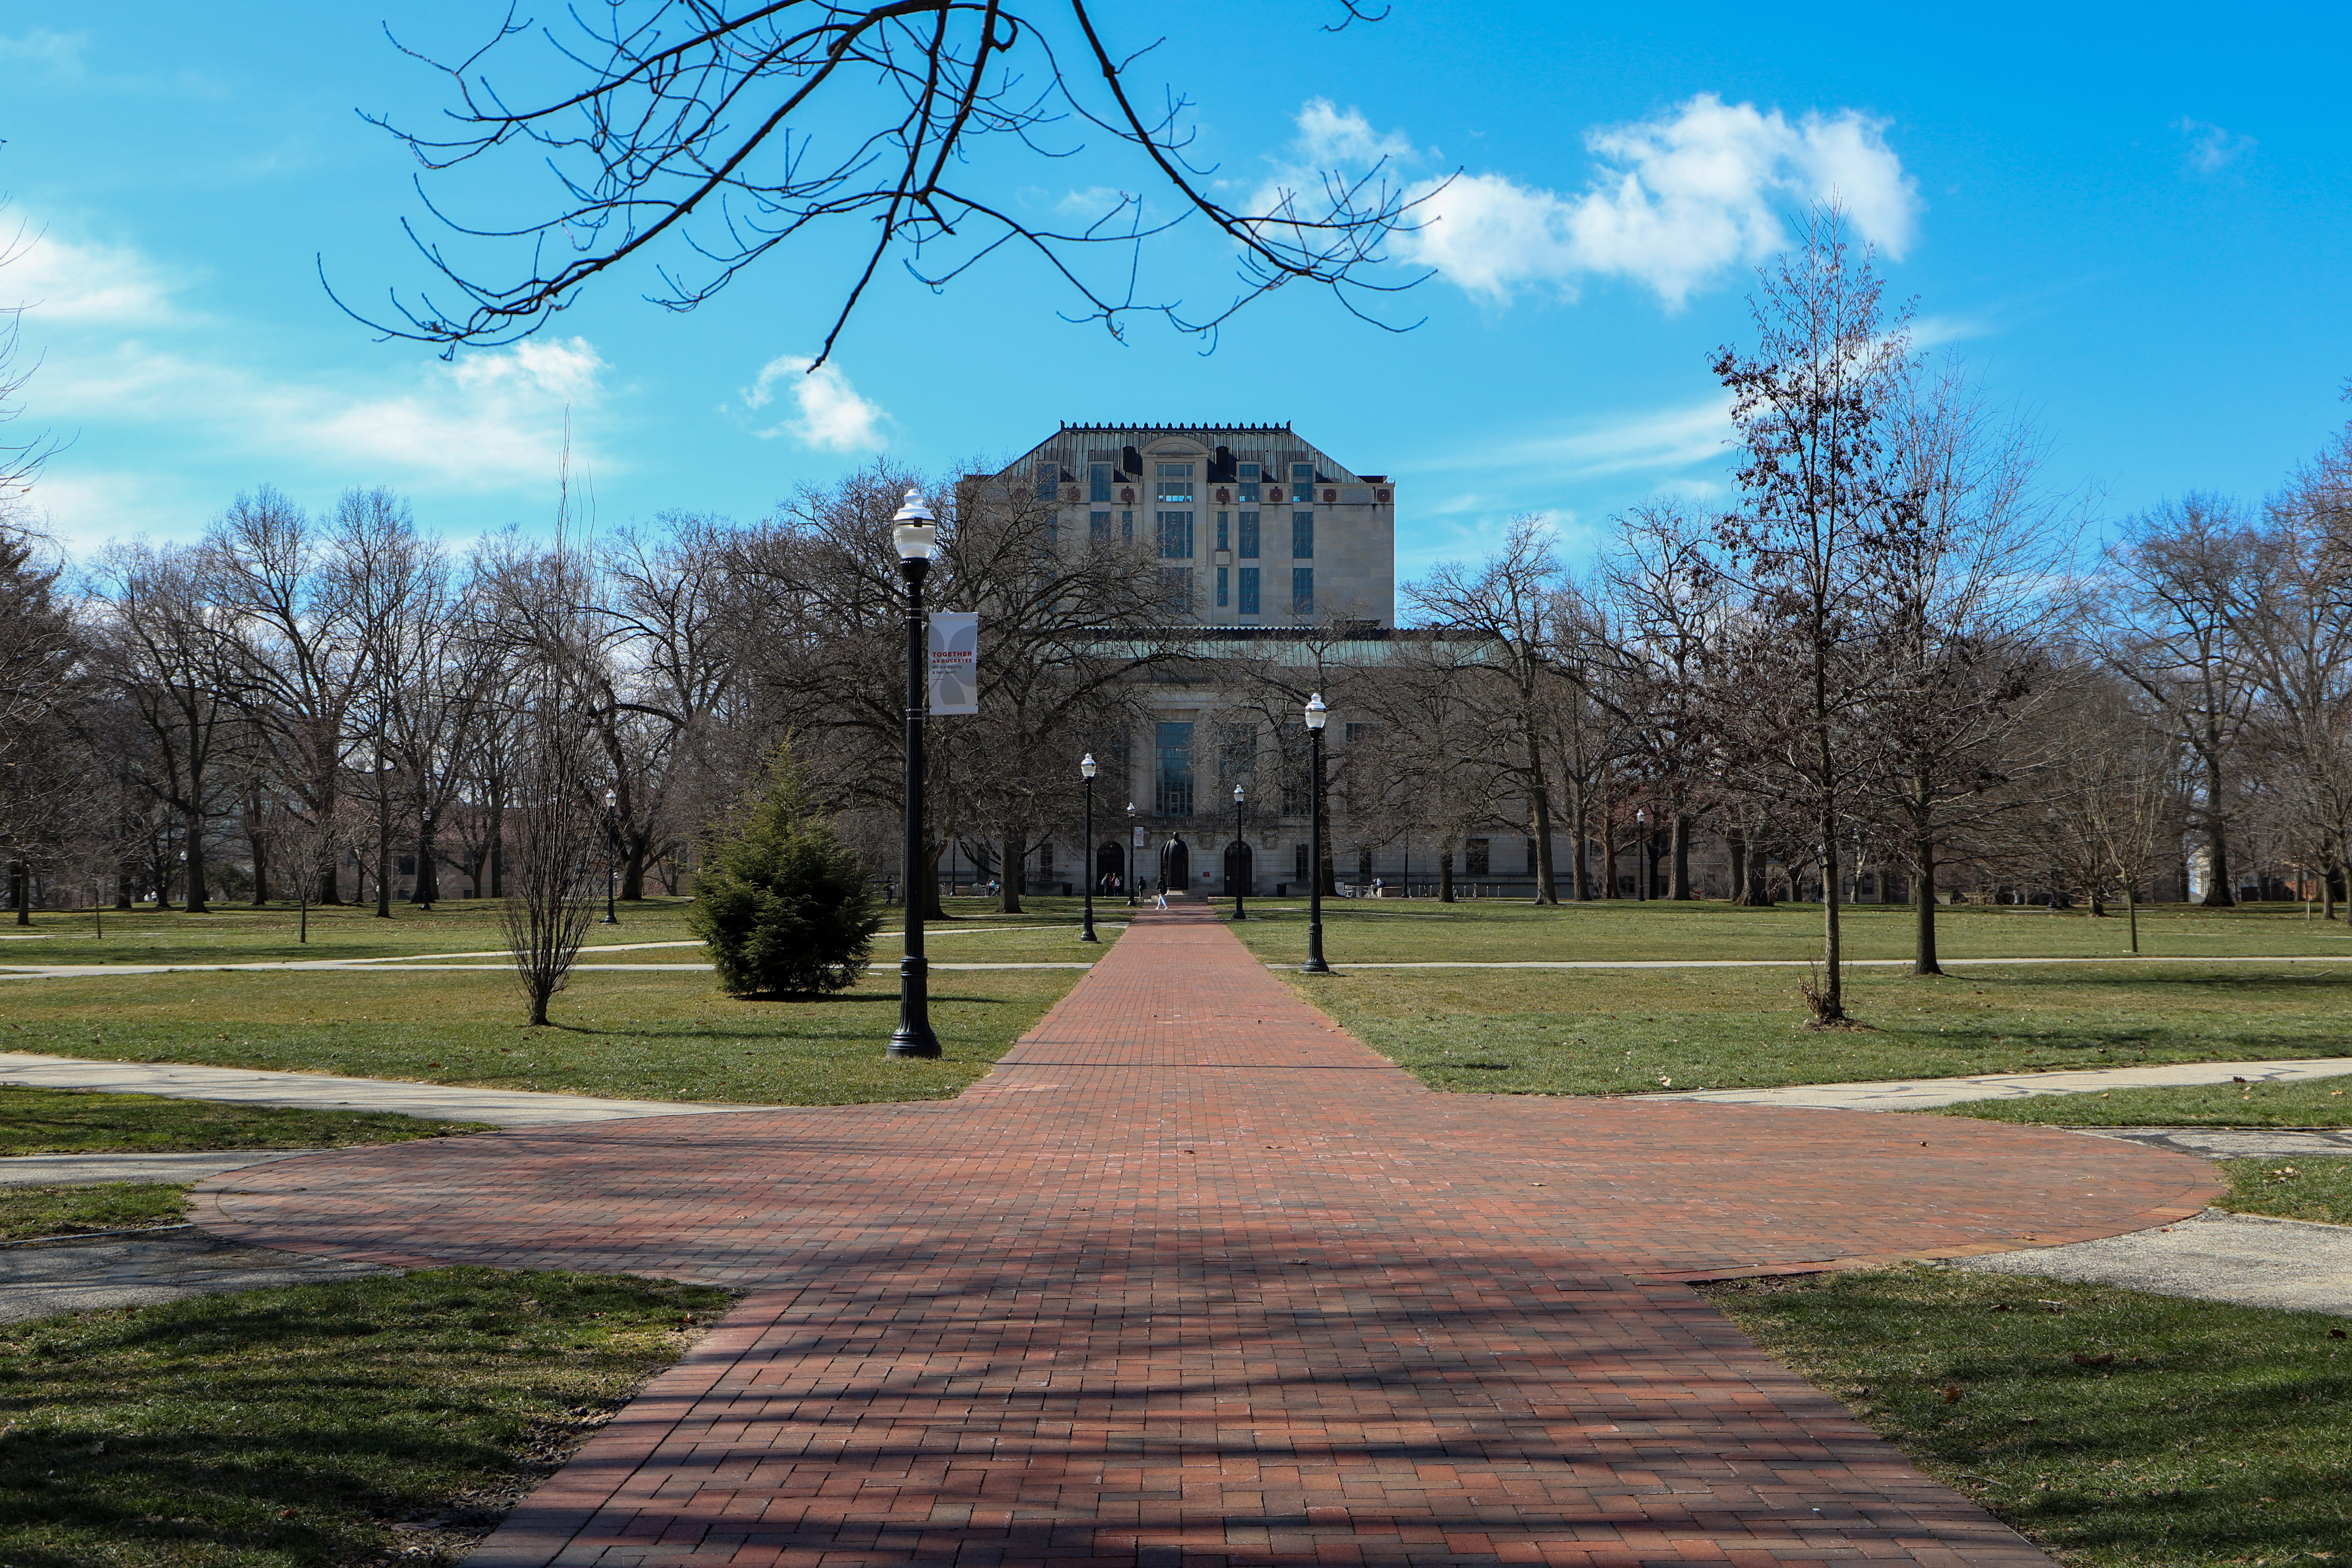 www.thelantern.com: Anti-Asian prejudice spikes amid COVID-19, Ohio State students say university community is no exception